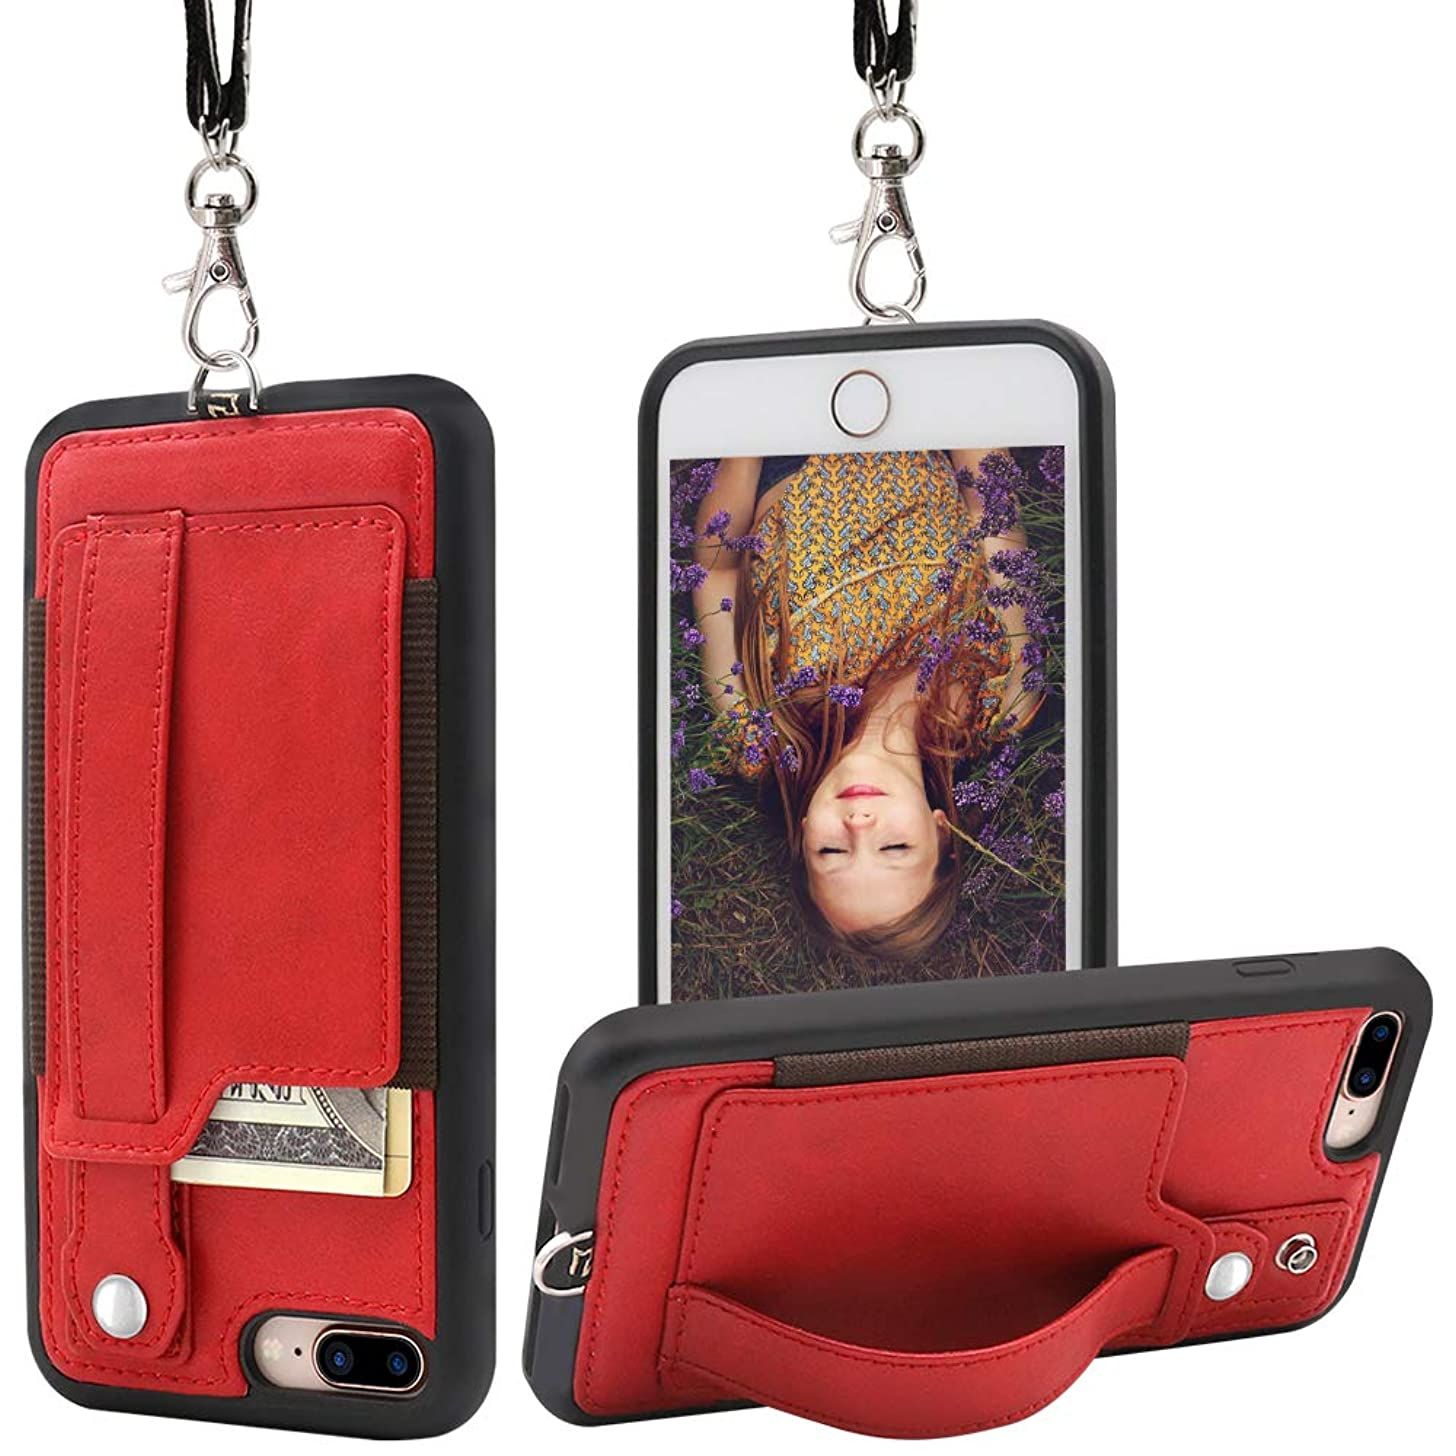 TOOVREN iPhone 7 Plus Wallet Case, iPhone 8 Plus Wallet Case, Necklace Lanyard Case with Kickstand Card Holder and Ajust Detachable Anti-Lost Lanyard Strap Perfect for Daily use, Work, Outdoors RED